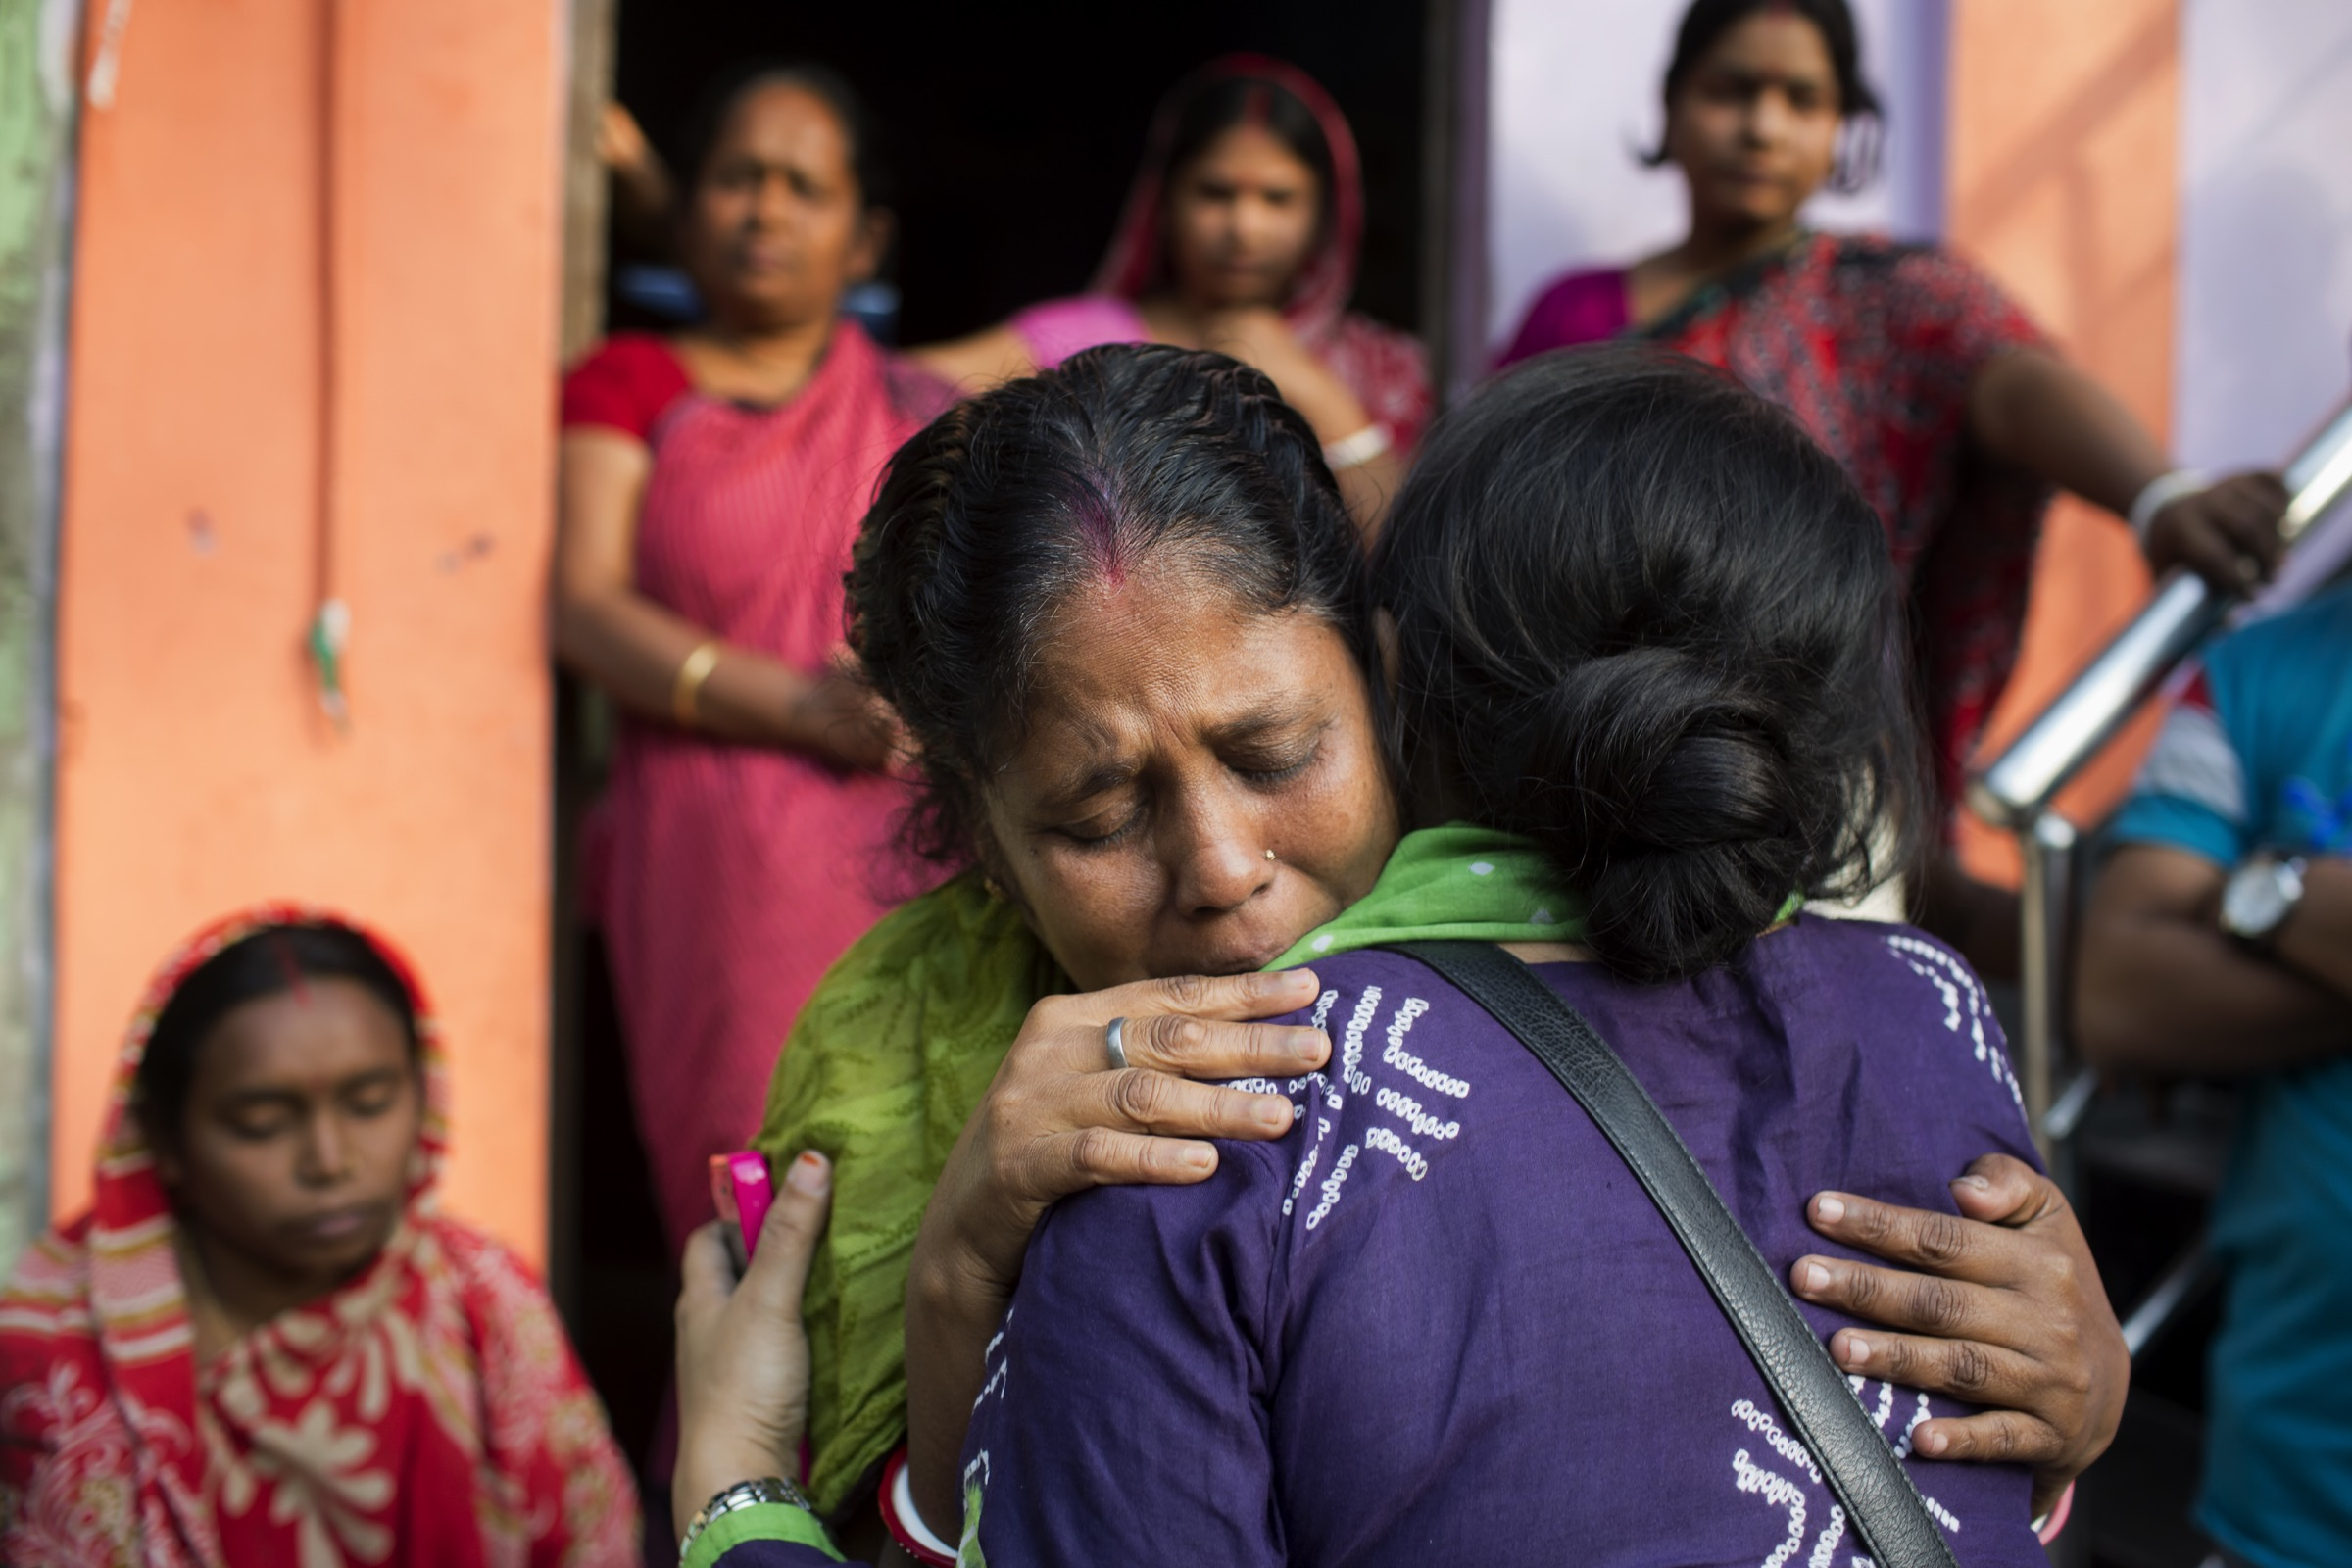 Arifa Nazneen (in purple), a senior medical officer at ICDDR,B is frequently on the front lines of Nipah investigations. Here she tries to comfort a mother in Faridpur whose son who fell ill after drinking date palm sap during a gathering to celebrate his graduation from high school. He has since died. Photograph by A.M. Ahad